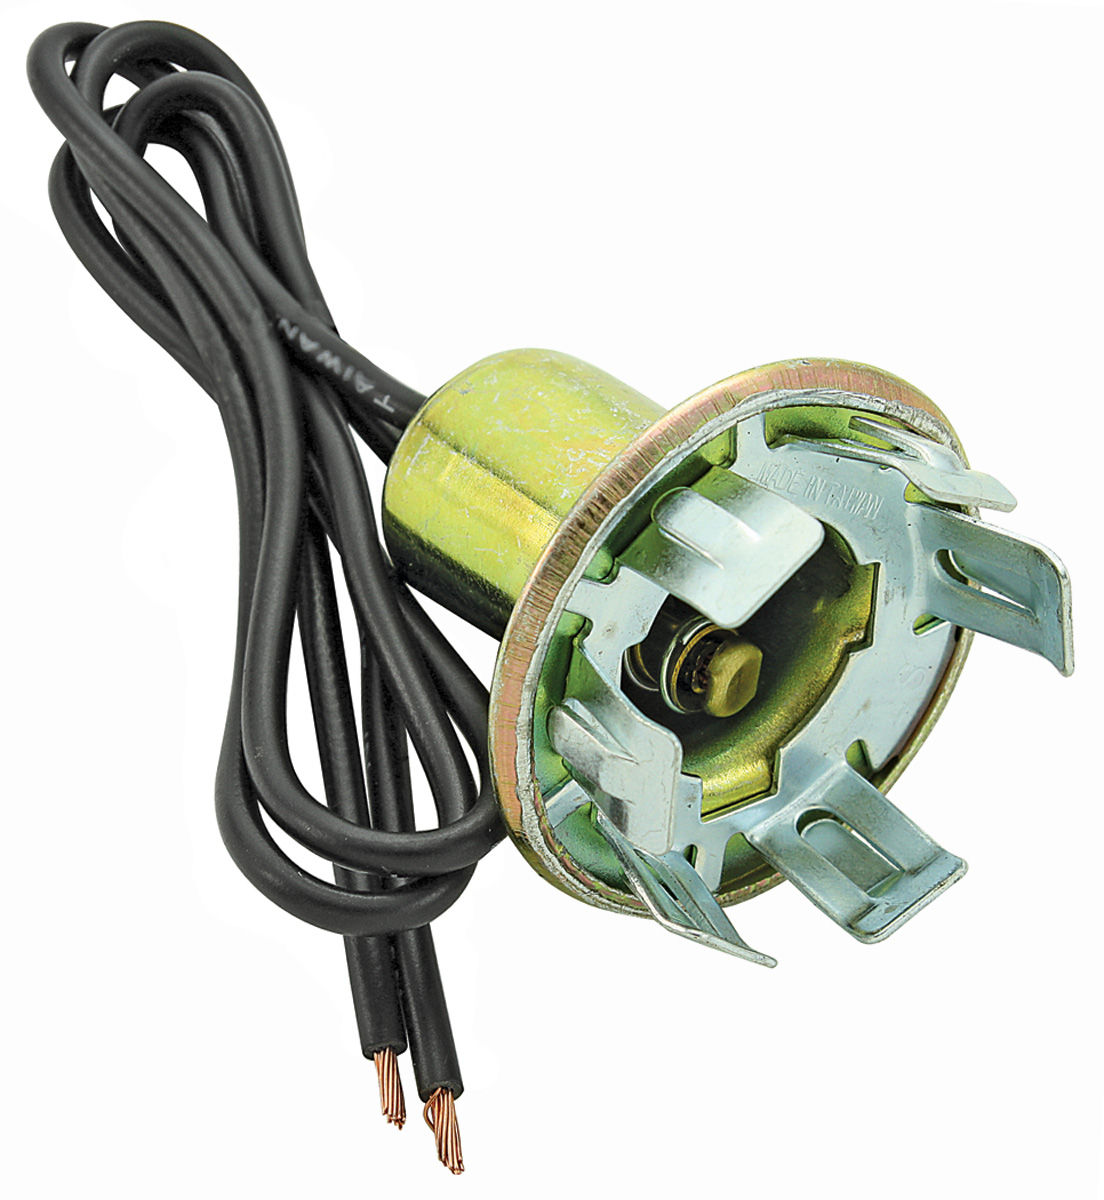 Pontia Headlight Socket Wiring Diagram Restoparts 1964 68 Chevelle Light Socket Turn Signal 2